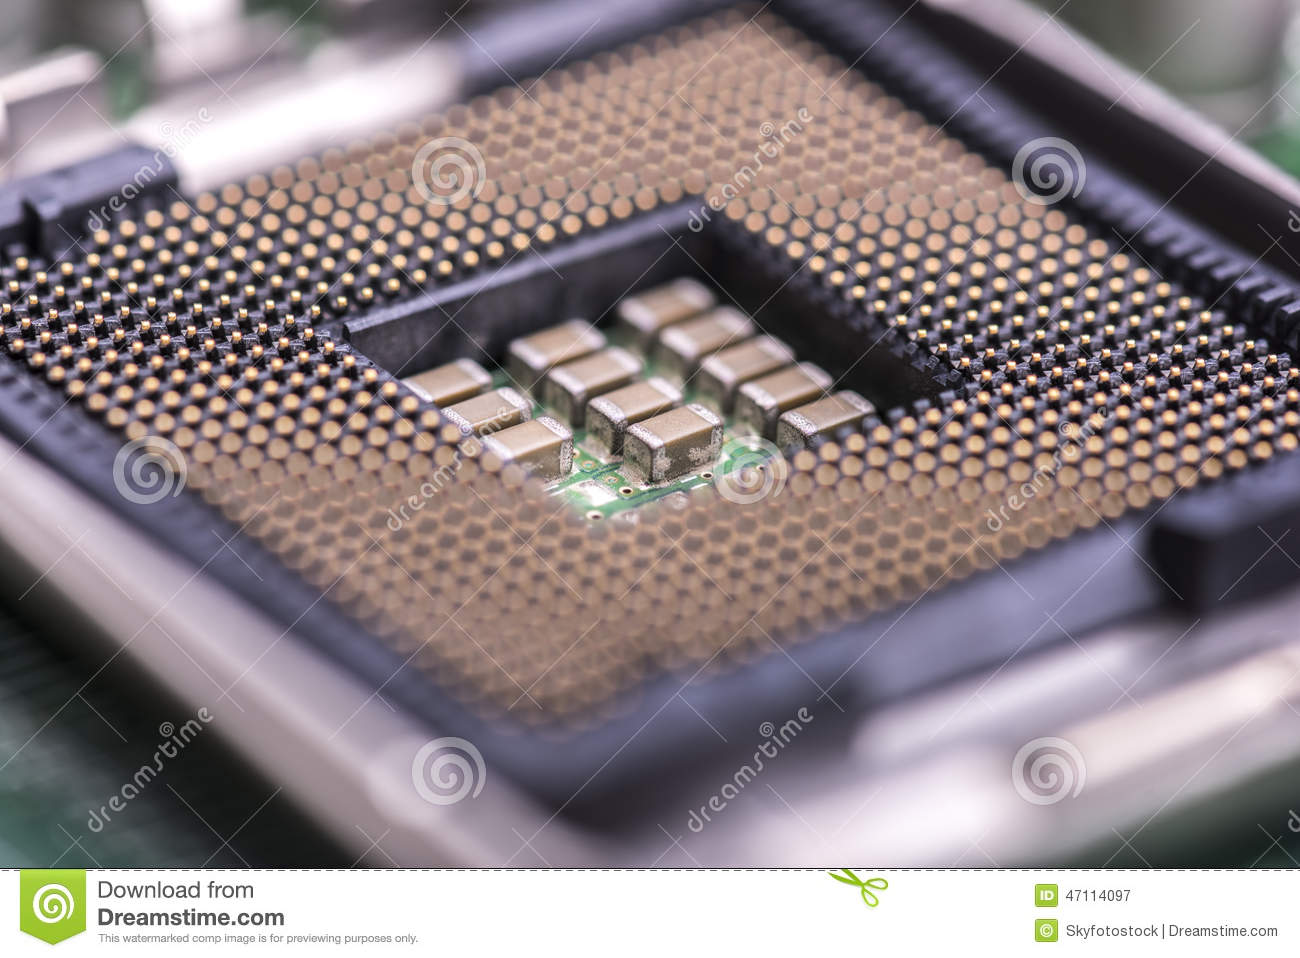 Central processing unit and memory